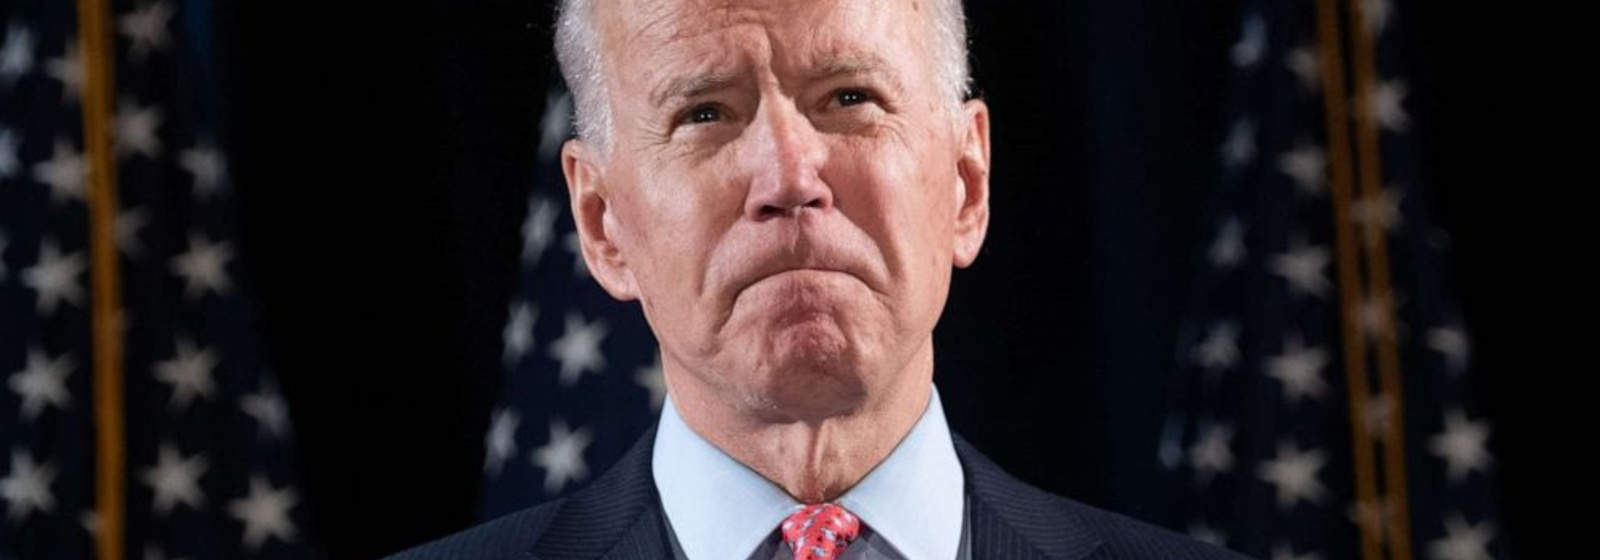 Biden Approval Ratings Plummet After Inauguration